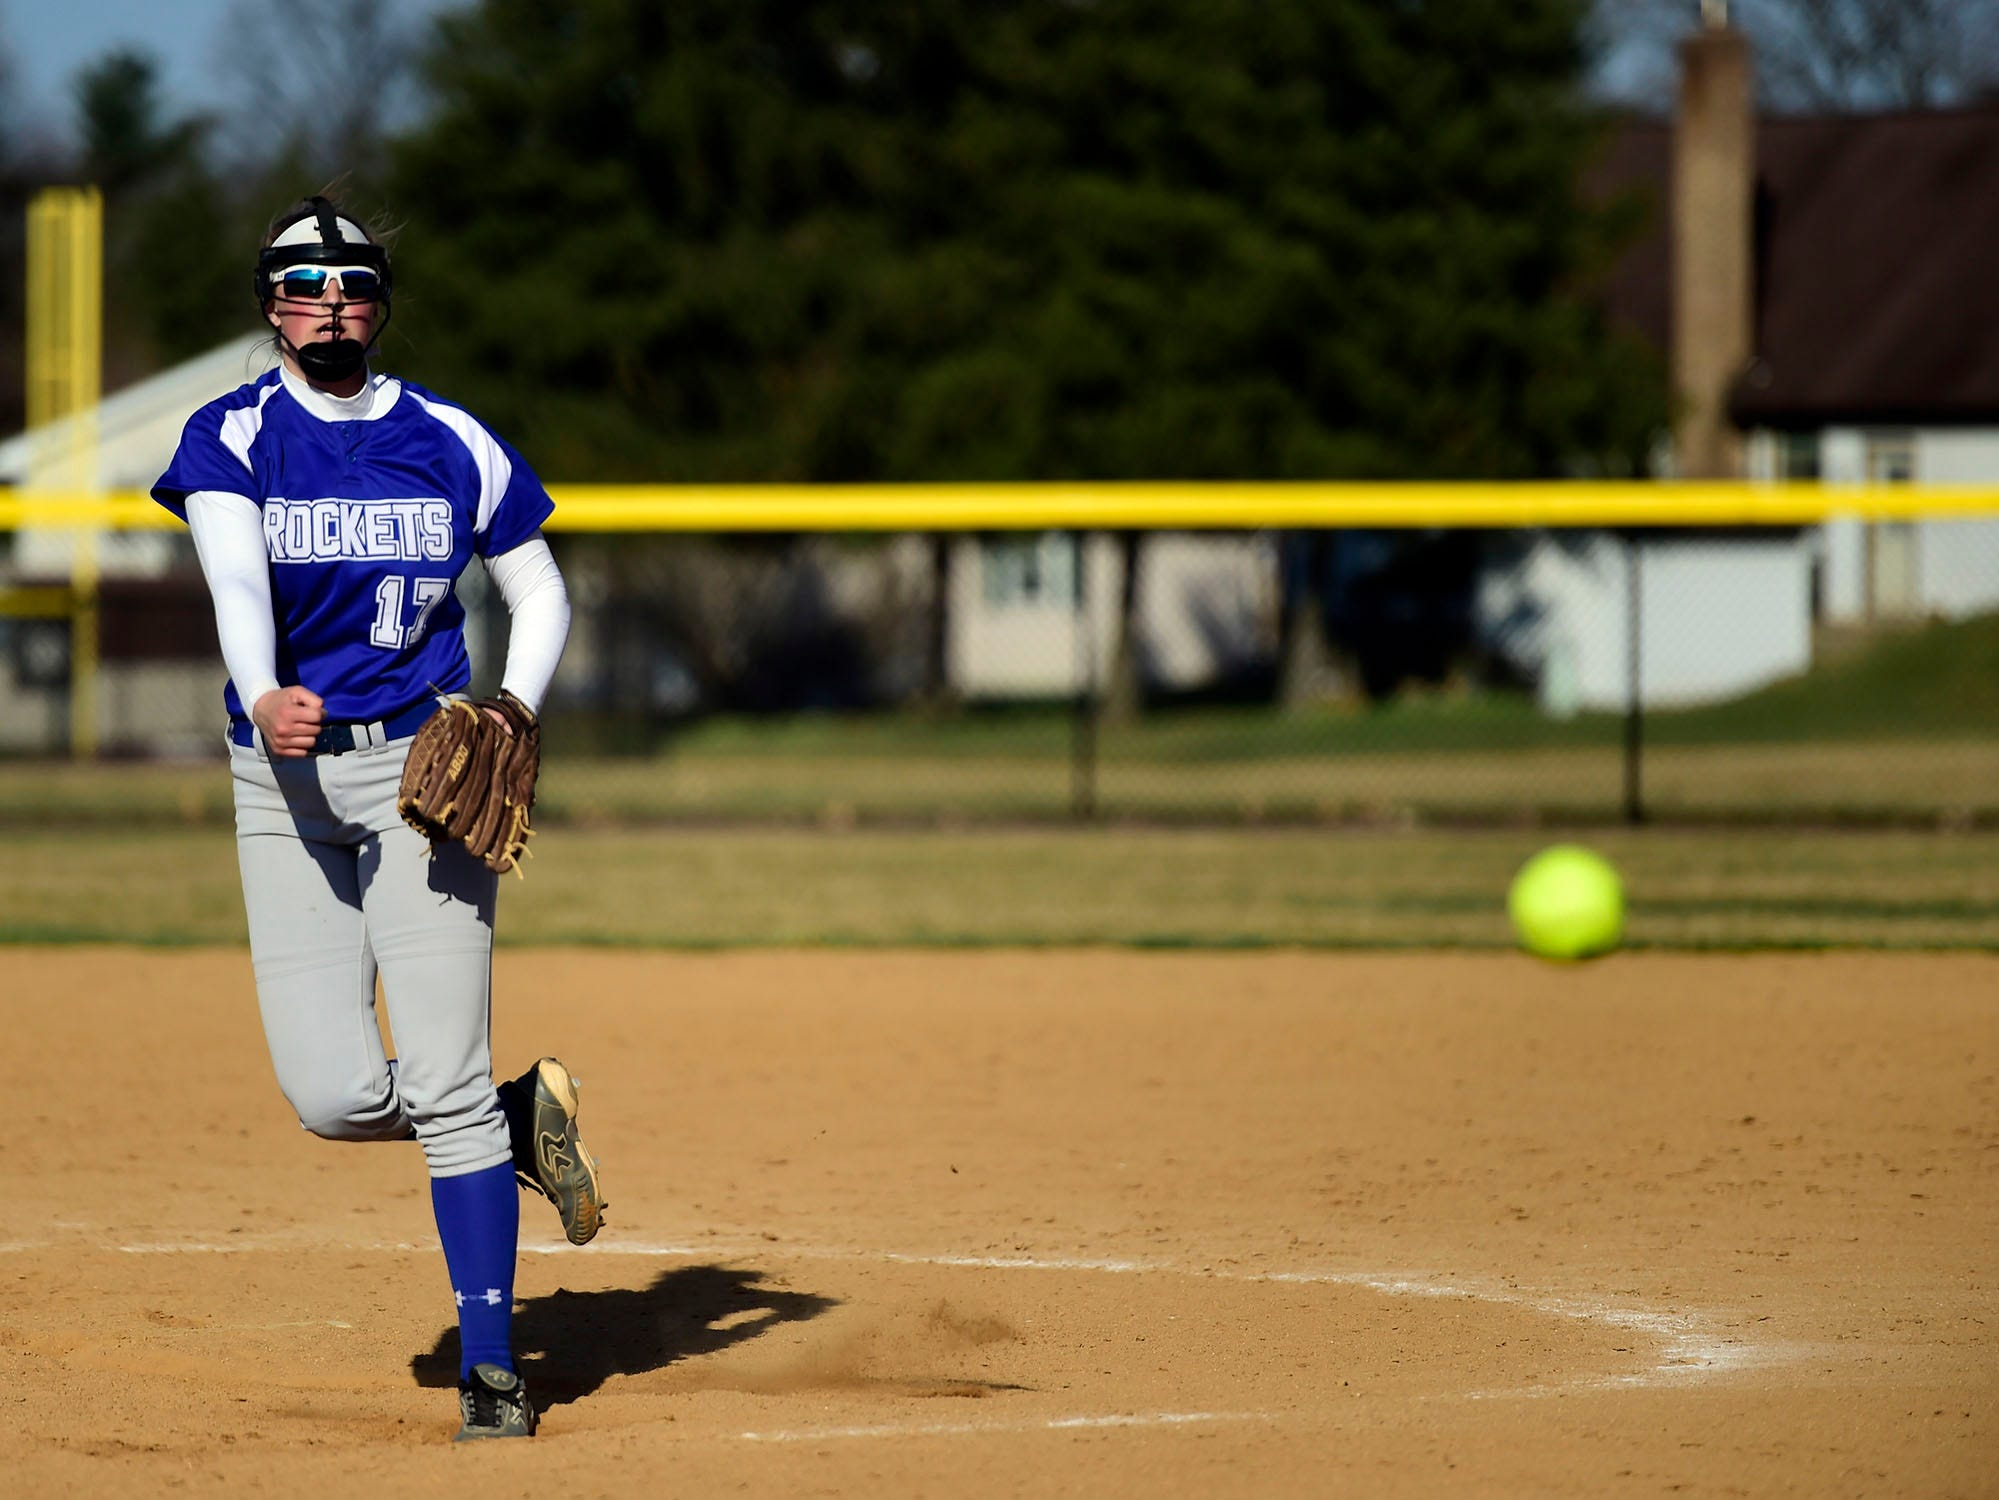 Spring Grove starting pitcher Hailey Kessinger delivers to the plate against Northeastern on Wednesday, April 3, 2019. Kessinger earned the win, striking out nine and walking one.